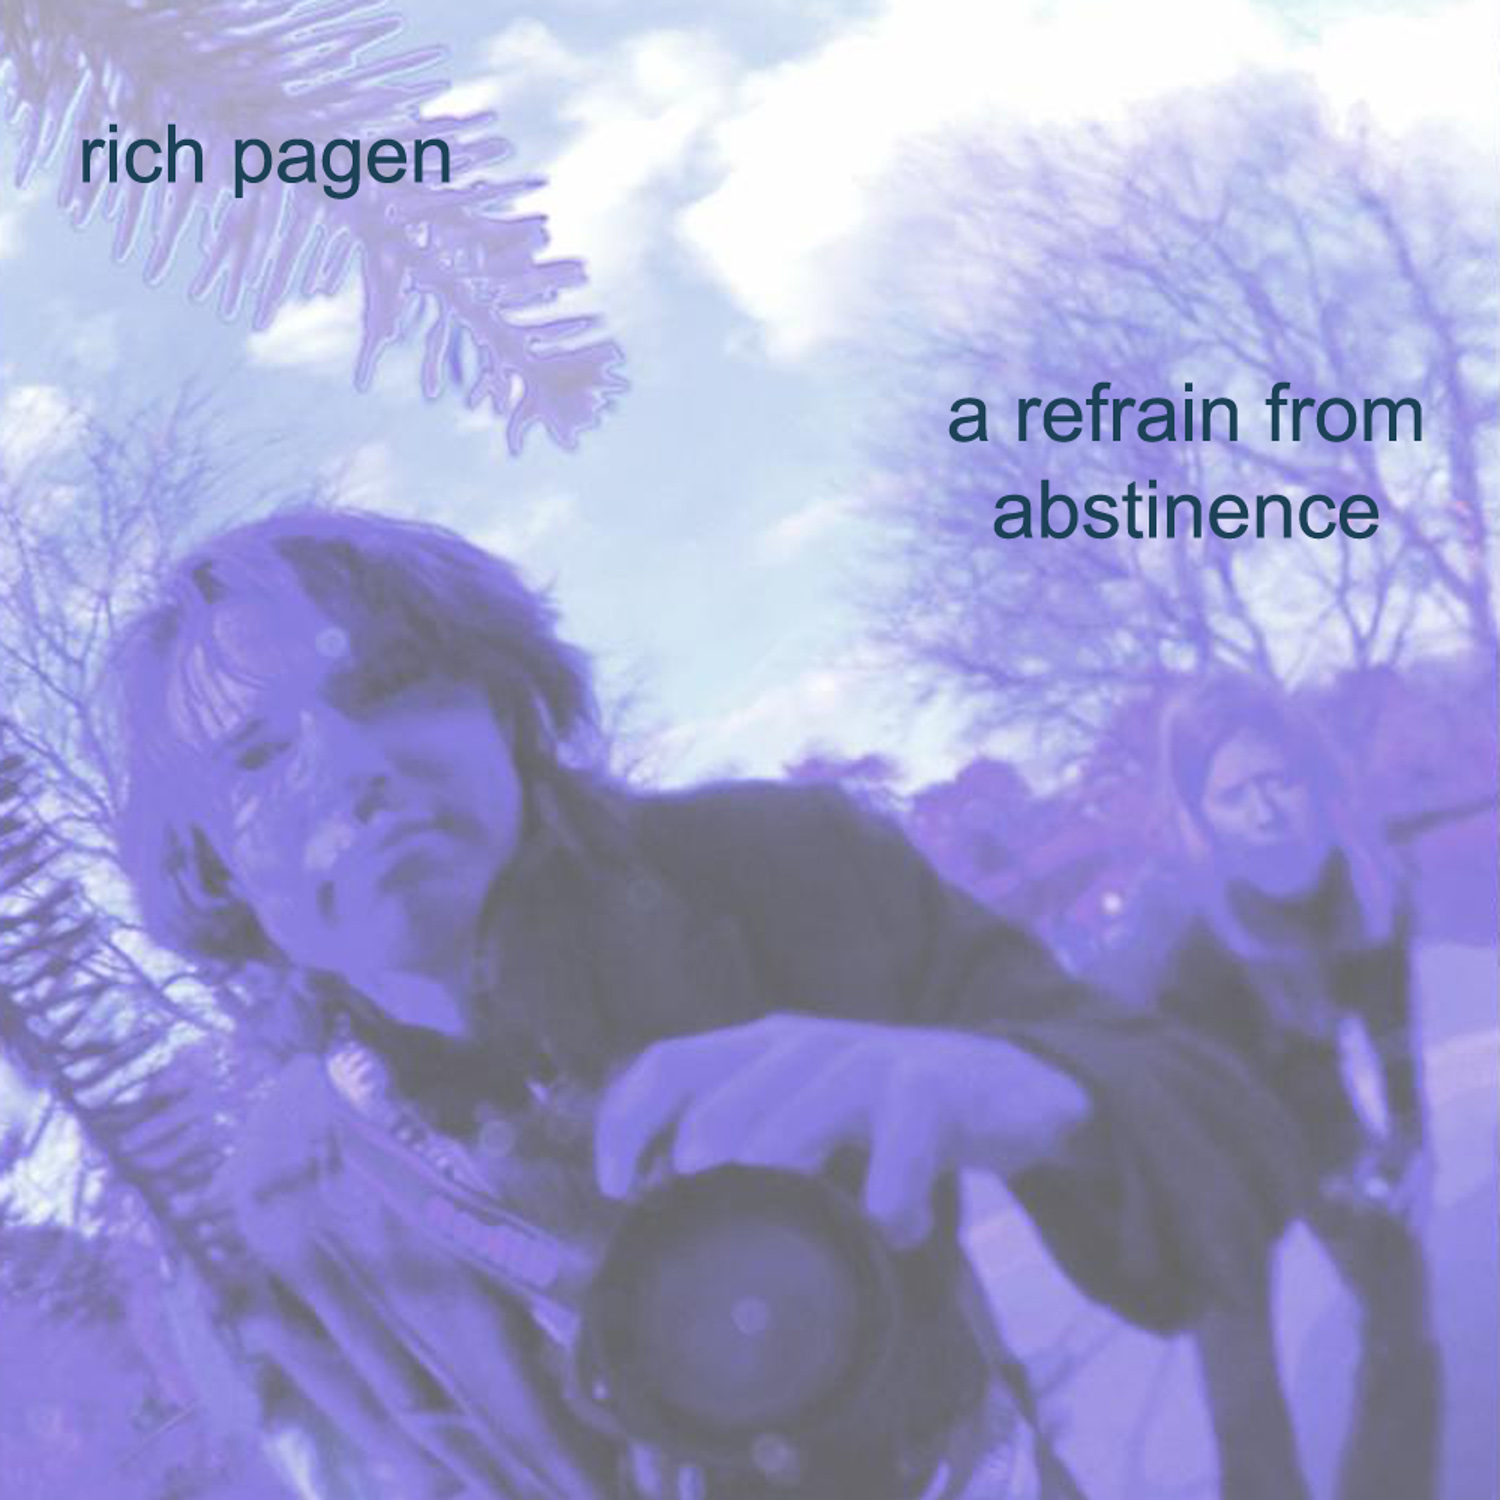 Rich Pagen - A refrain from abstinence (2005)